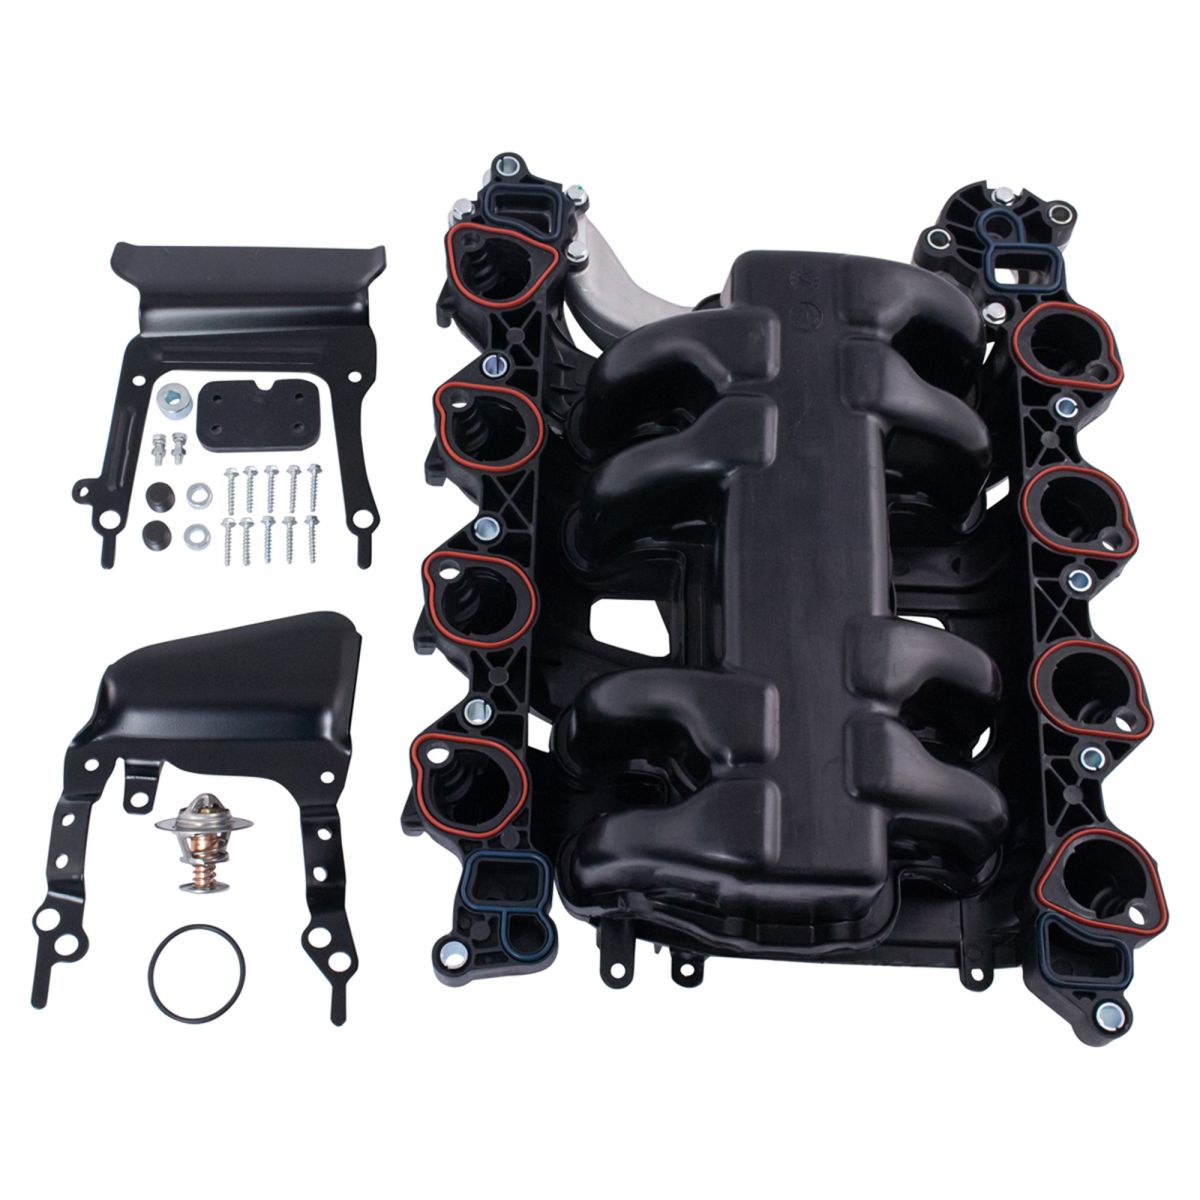 hight resolution of new intake manifold w gasket thermostat o rings for ford lincoln mercury 4 6l